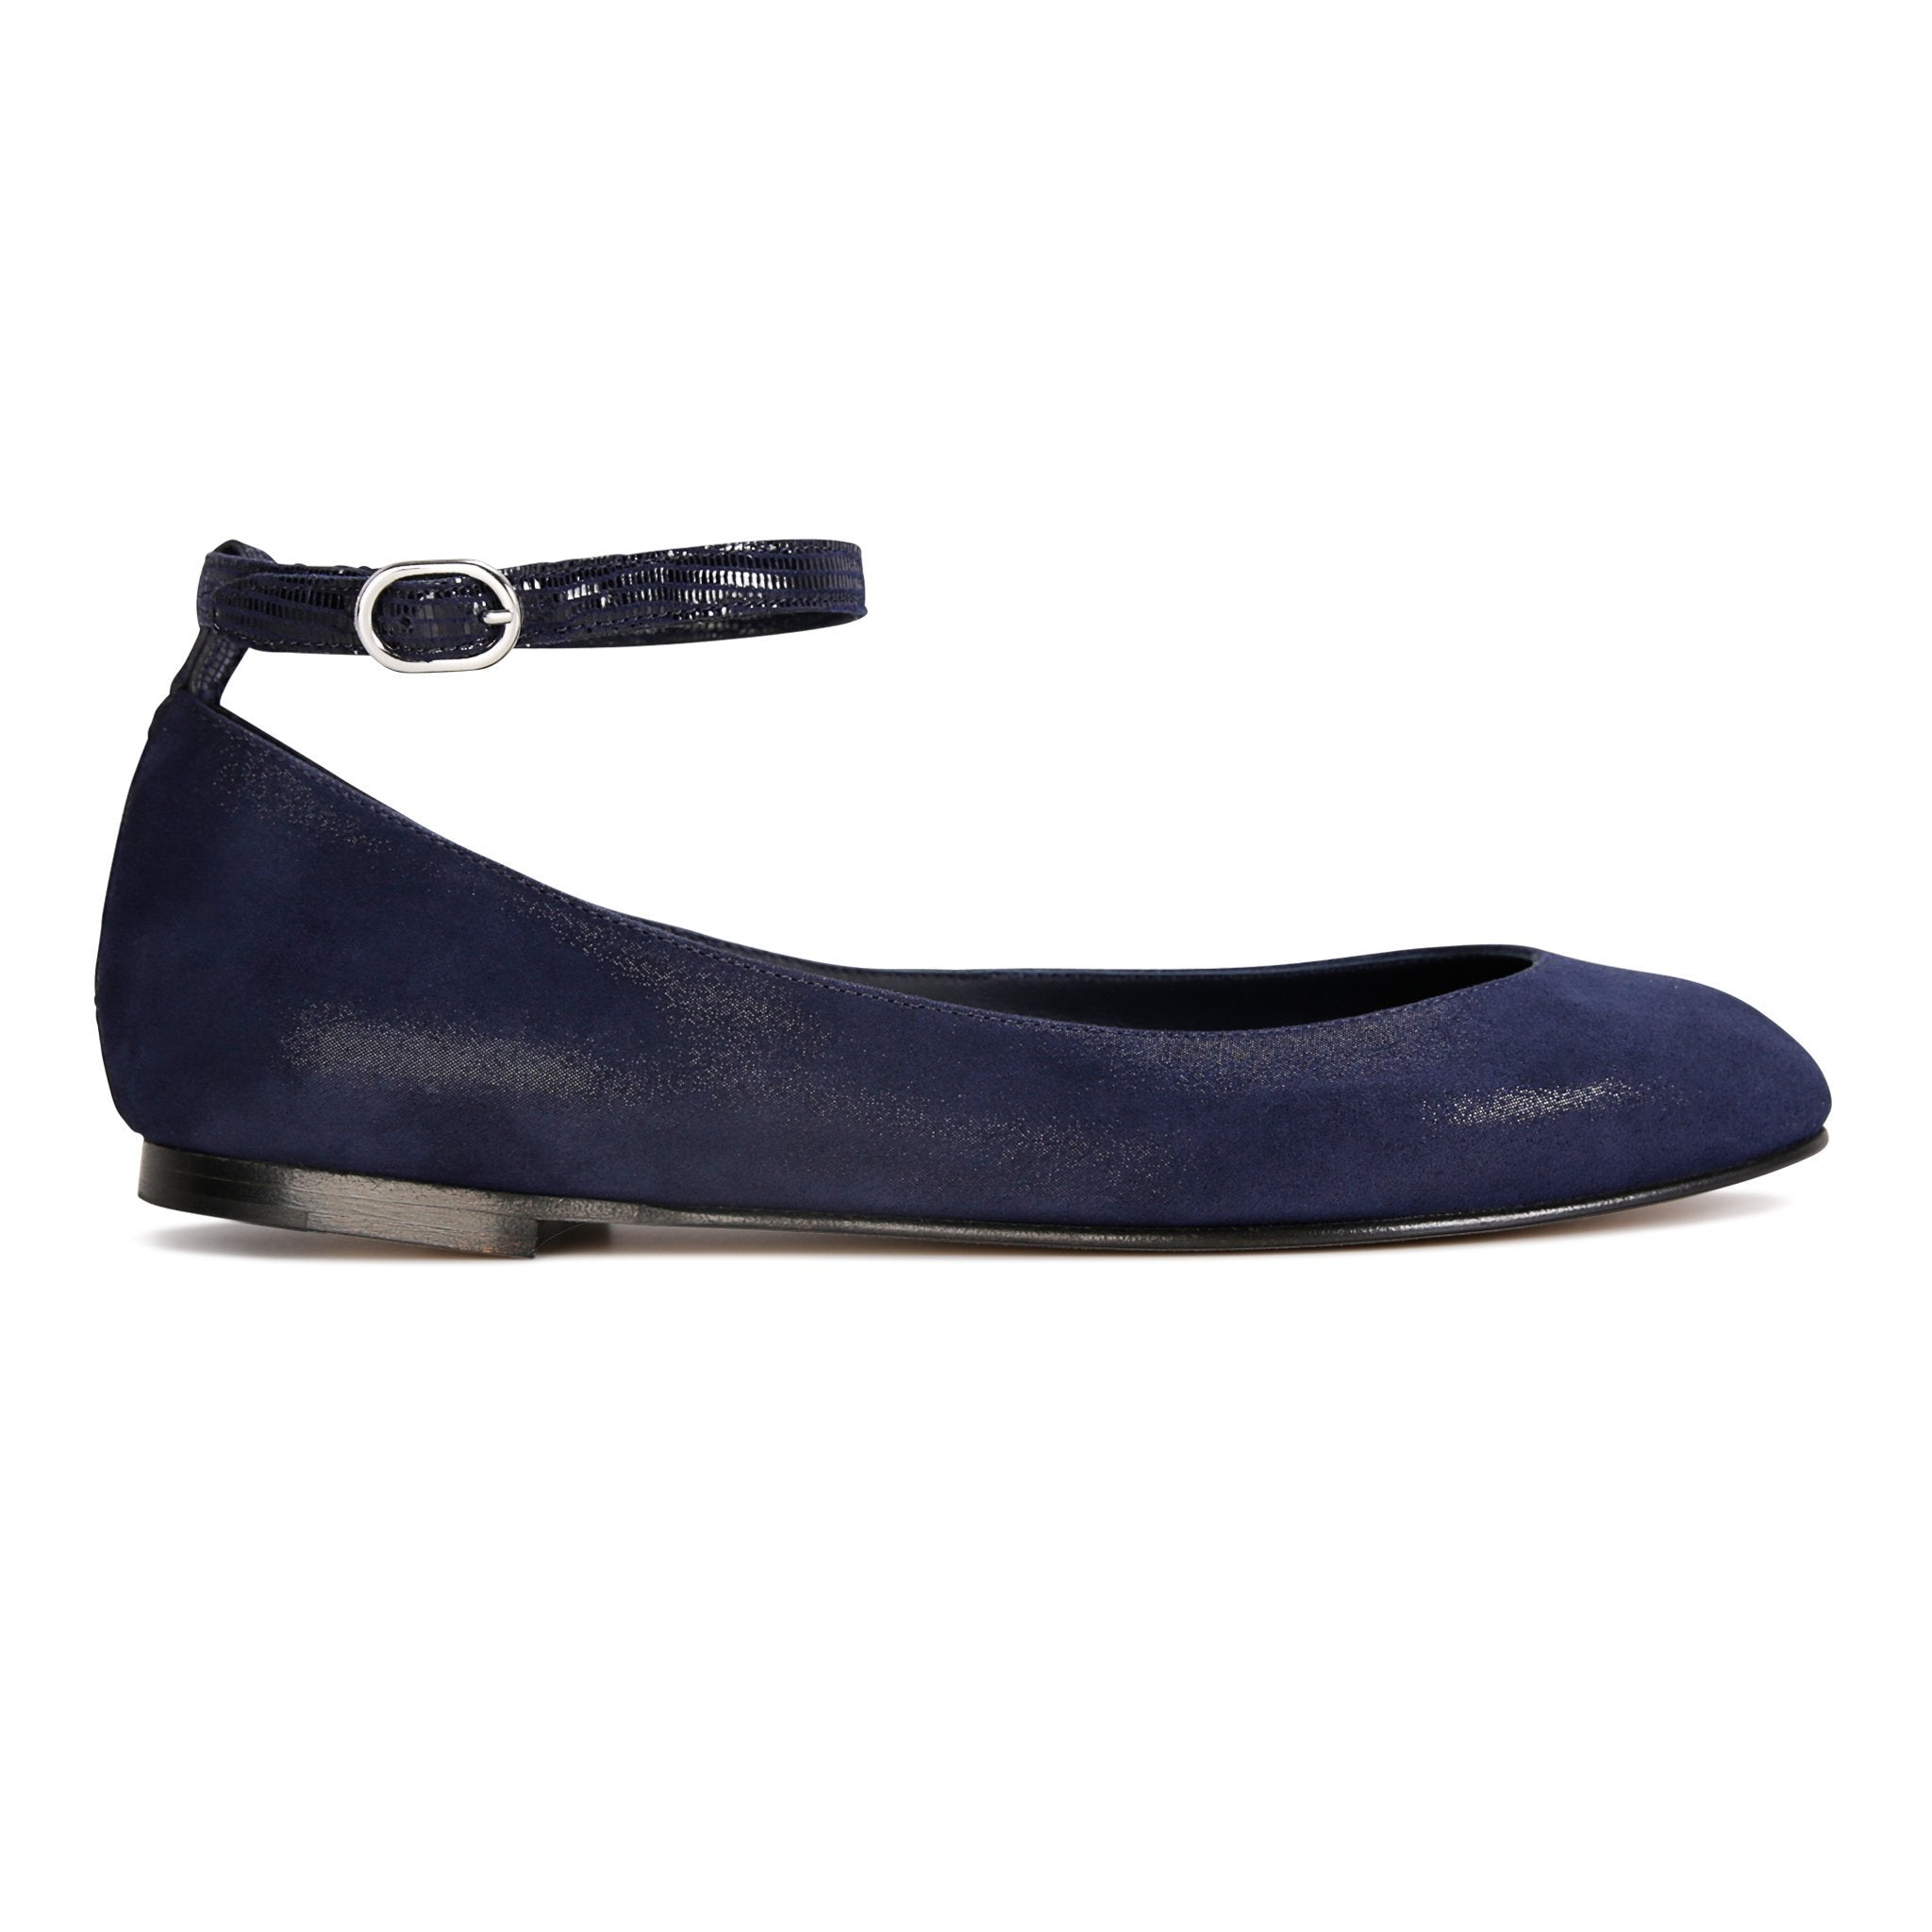 TORINO - Hydra Midnight + Varanus, VIAJIYU - Women's Hand Made Sustainable Luxury Shoes. Made in Italy. Made to Order.